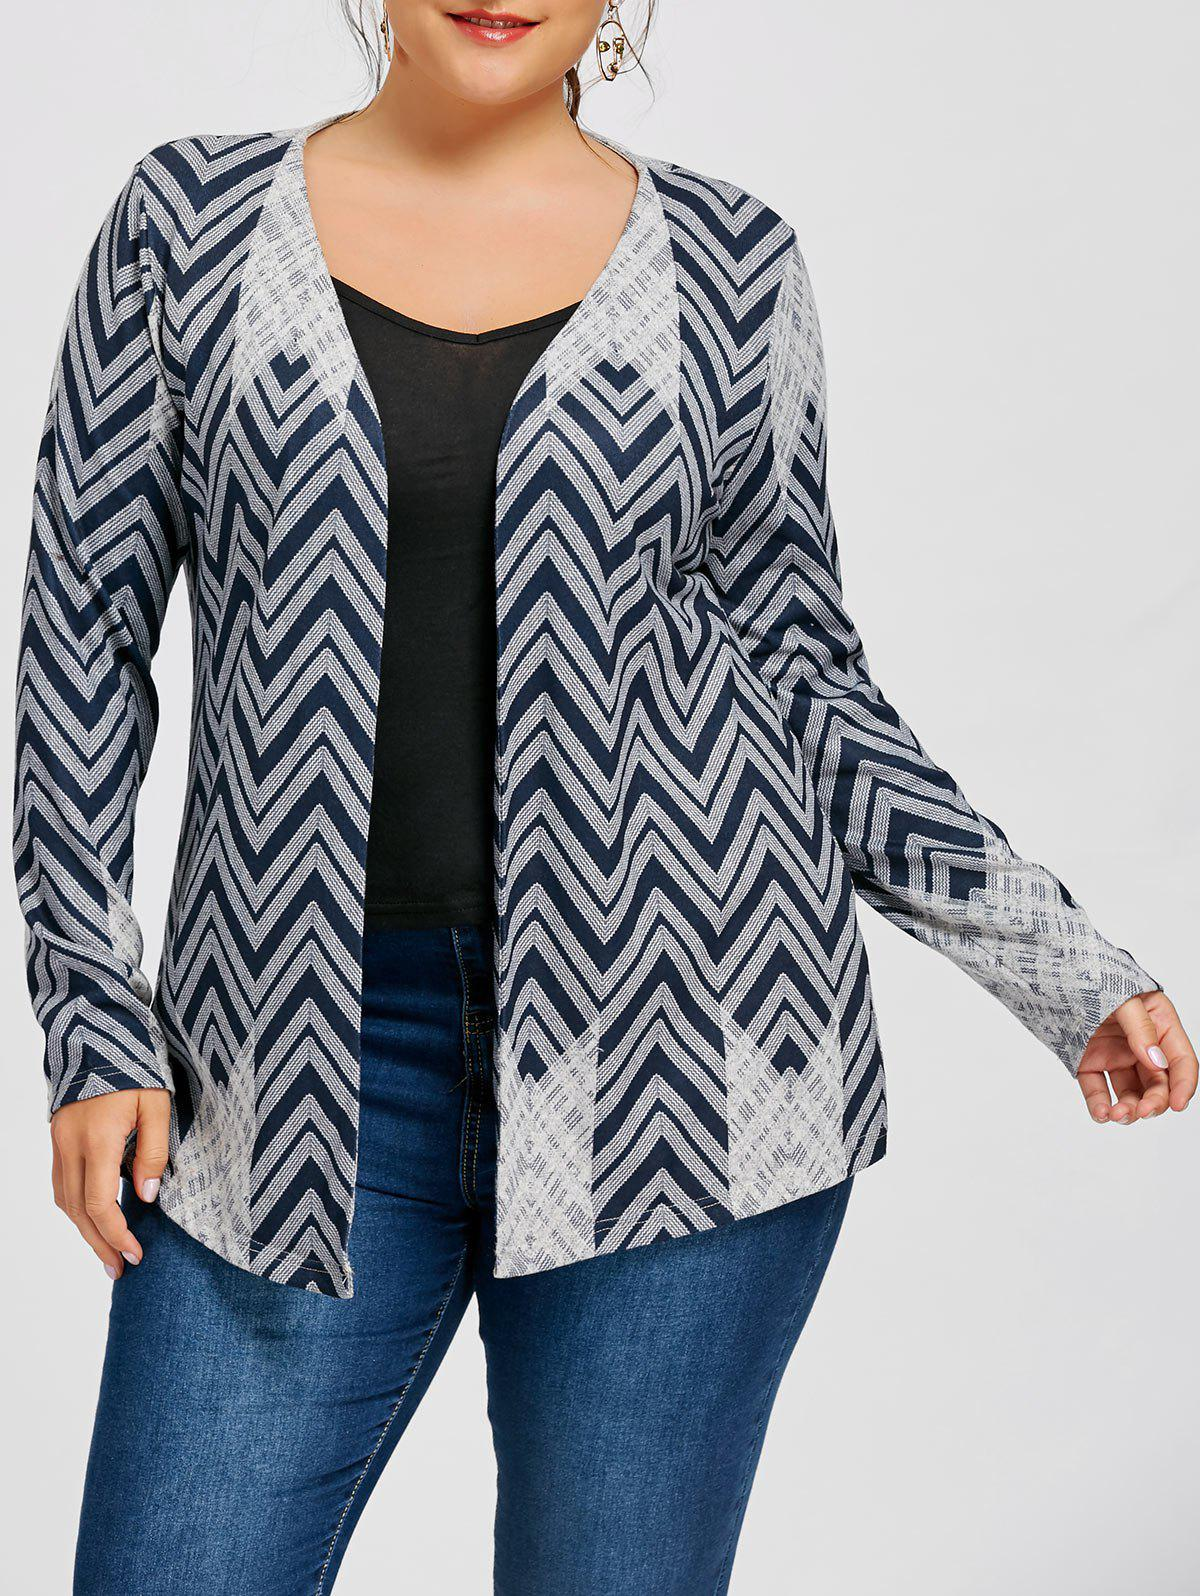 Plus Size Chevron CardiganWOMEN<br><br>Size: 2XL; Color: CADETBLUE; Type: Pullovers; Material: Polyester; Sleeve Length: Full; Collar: Collarless; Style: Casual; Season: Fall,Spring; Pattern Type: Chevron/Zig Zag; Weight: 0.3100kg; Package Contents: 1 x Cardigan;